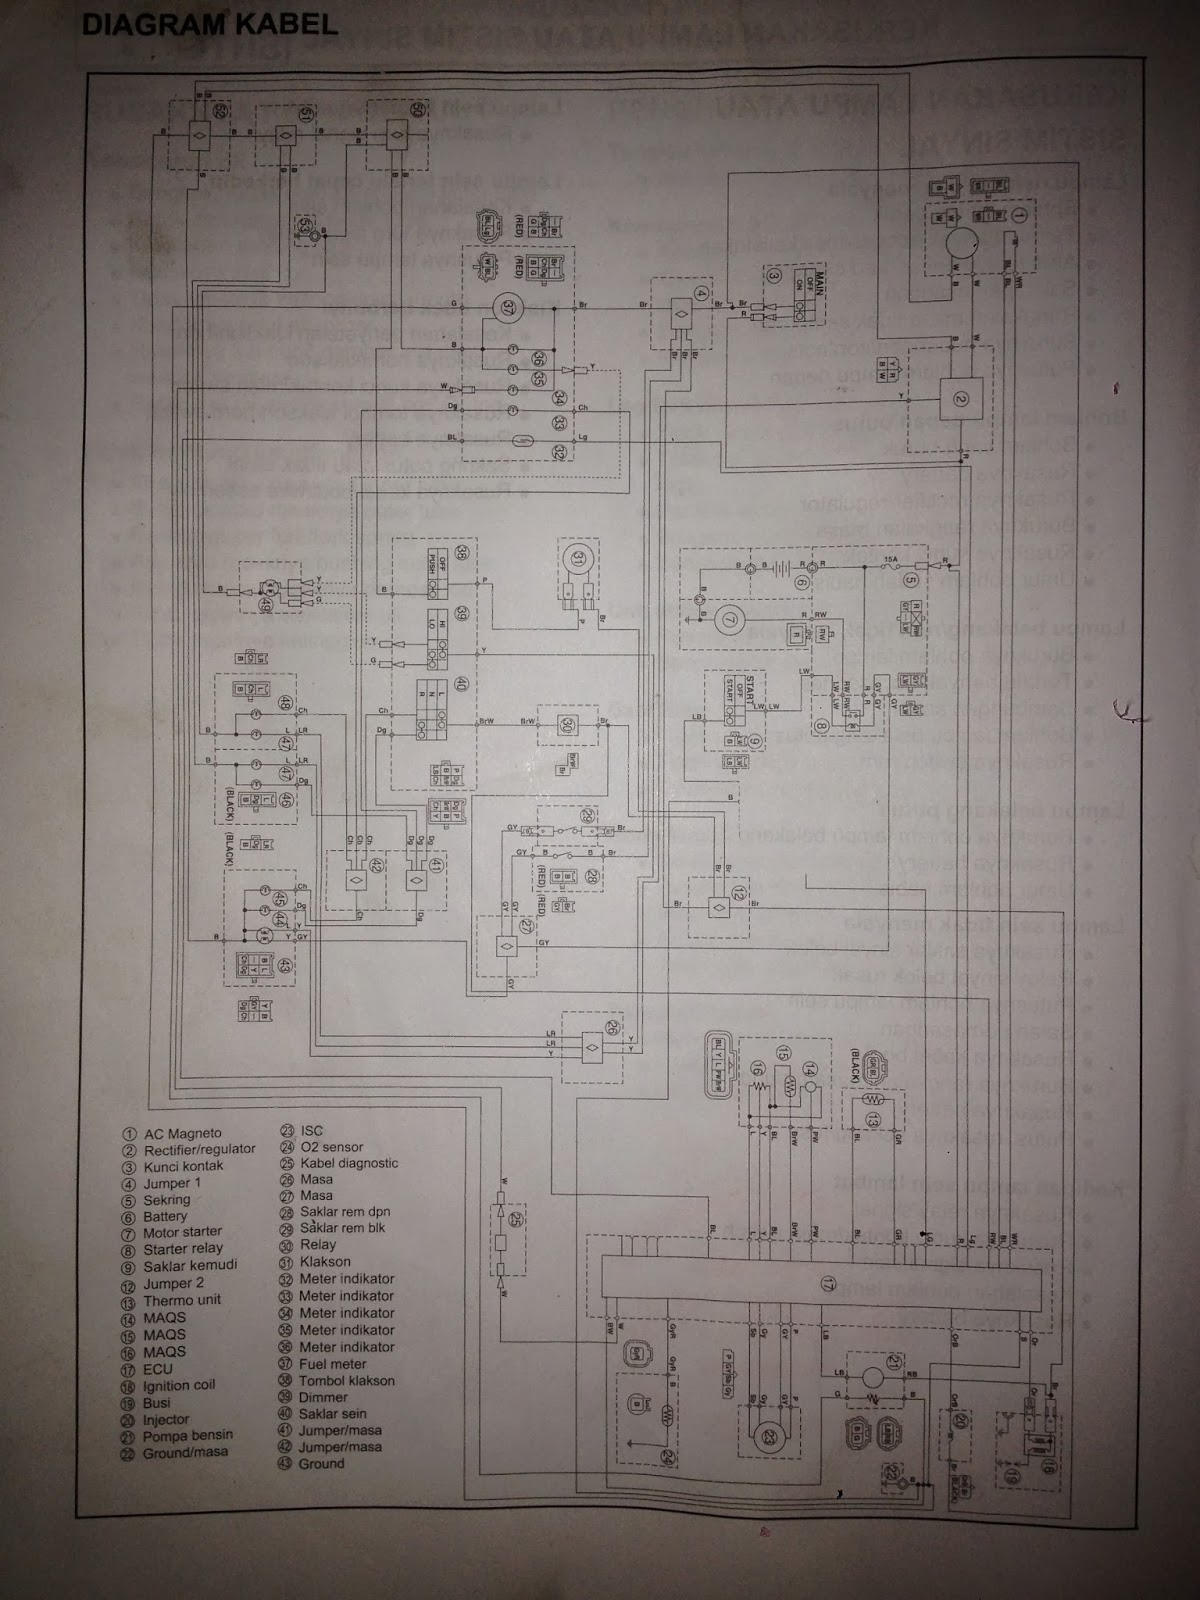 small resolution of bengkel motor diagram kelistrikan soul gt atau mio j wiring diagram mio j diagram kelistrikan soul